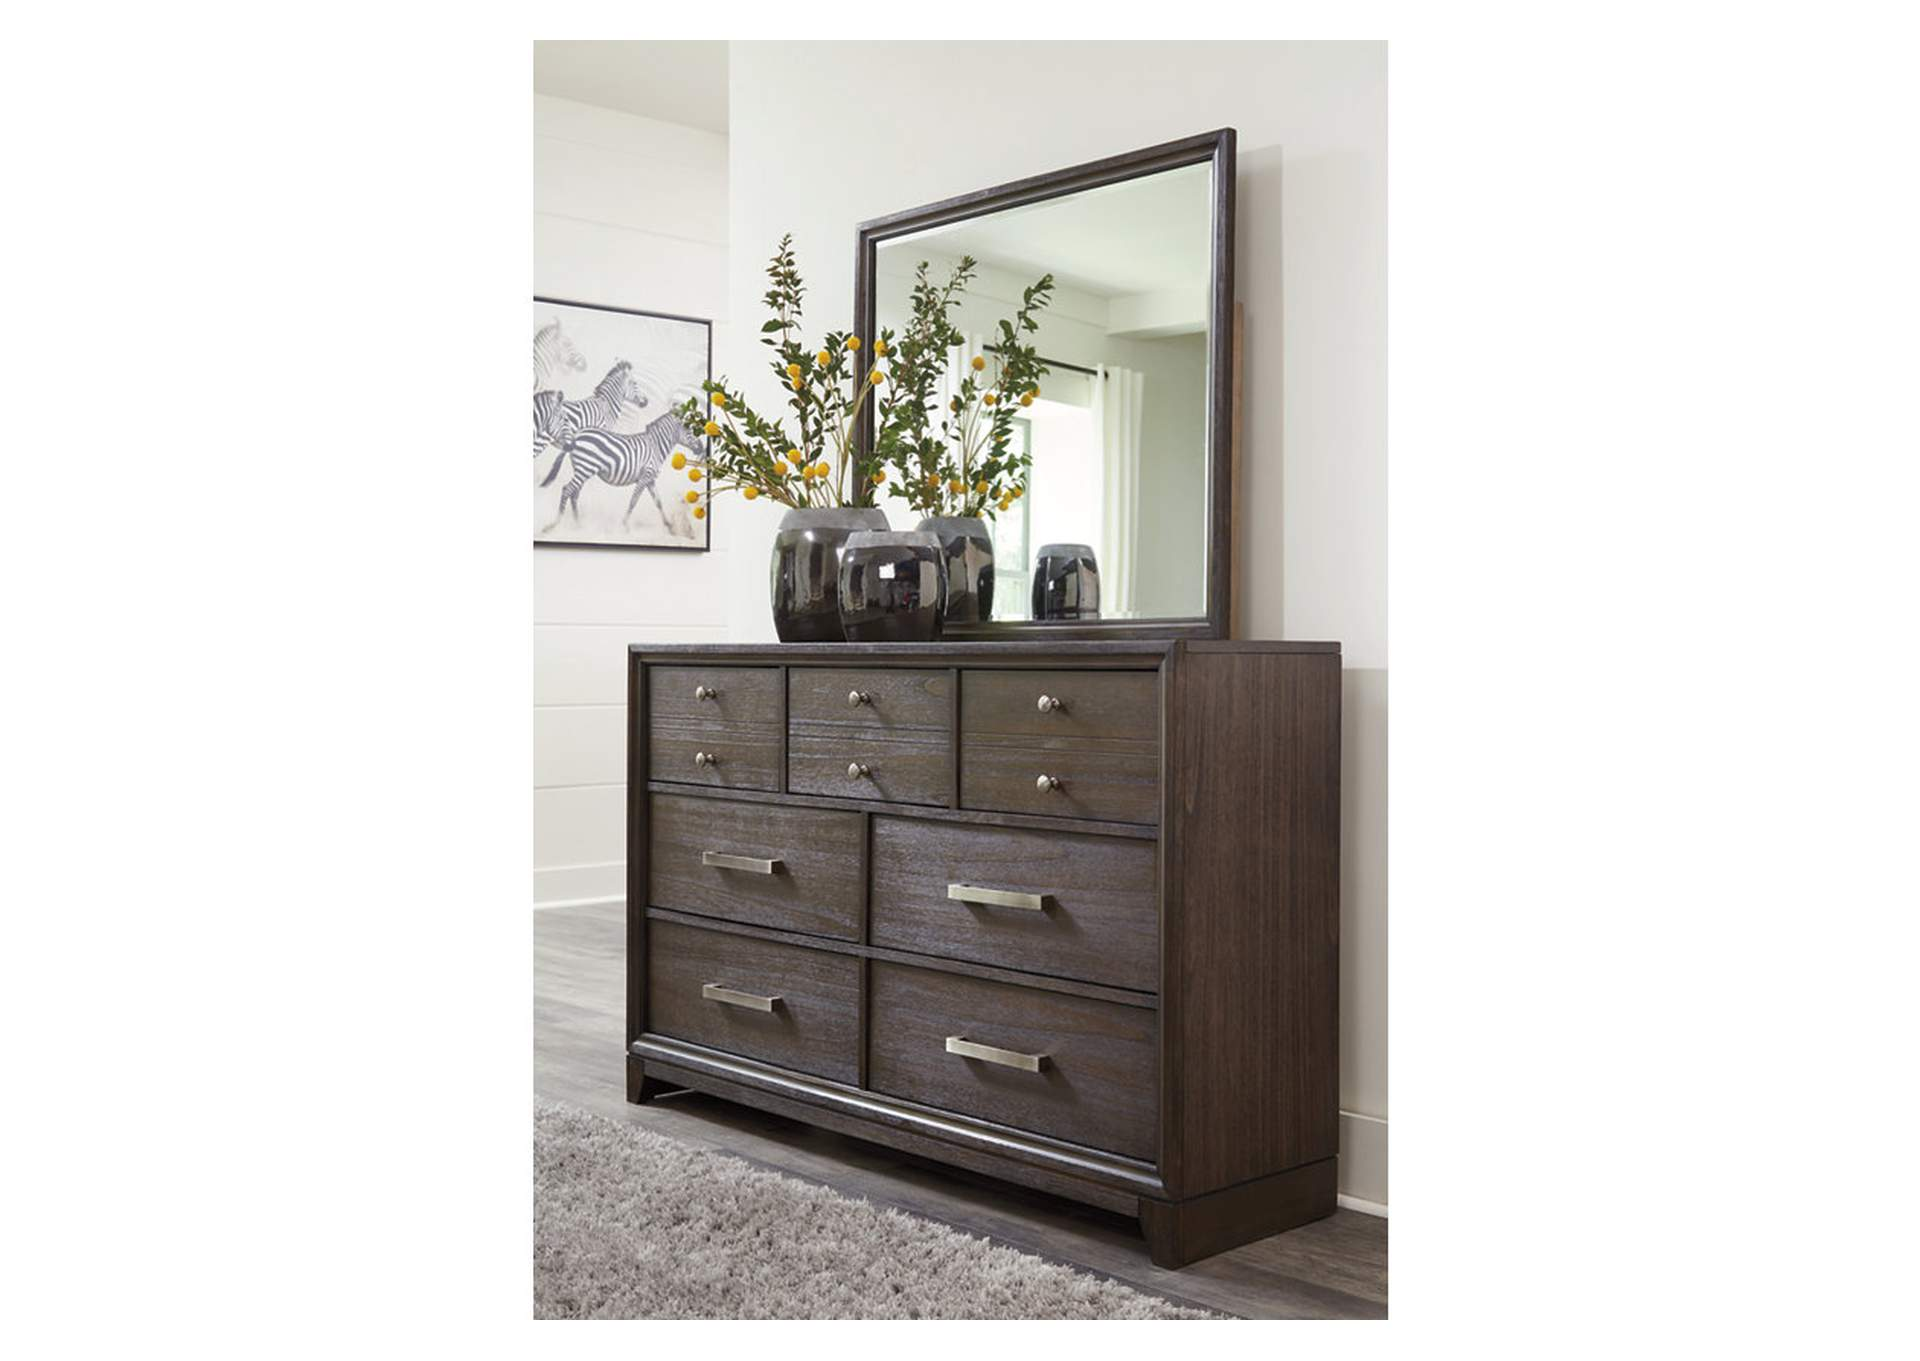 Brueban Gray Dresser and Mirror,Signature Design By Ashley